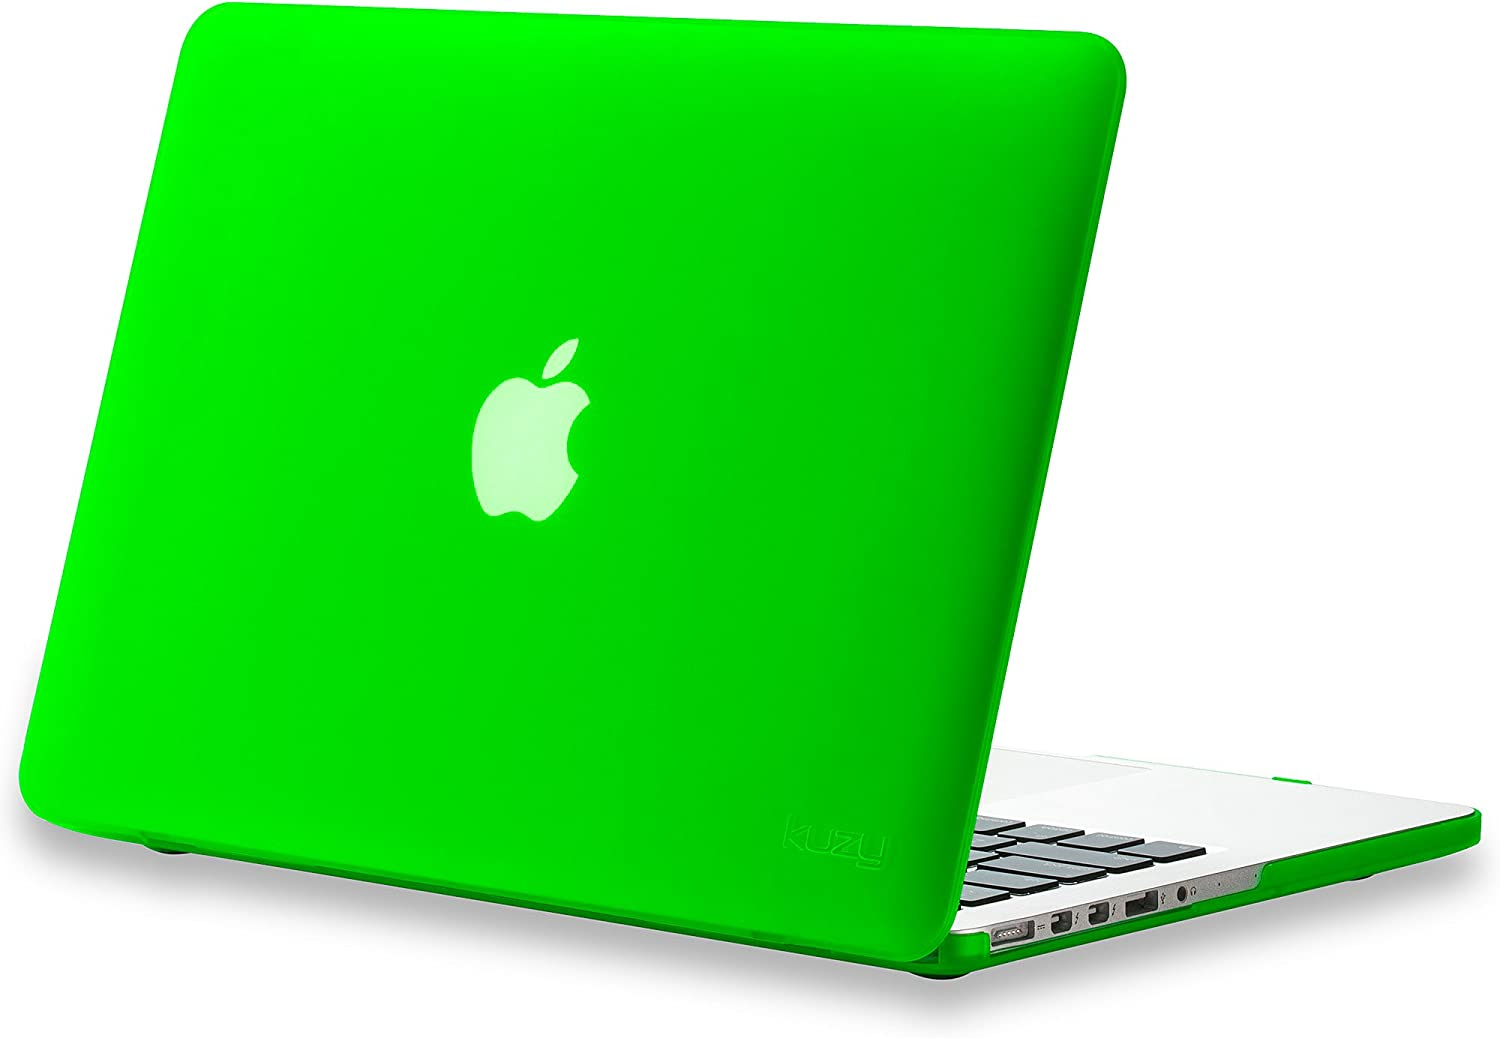 Kuzy Compatible with MacBook Pro 13.3 inch Case A1502, A1425 Release 2015-2012 Soft Touch Plastic Hard Shell Cover for Older Version MacBook Pro 13 inch, Green